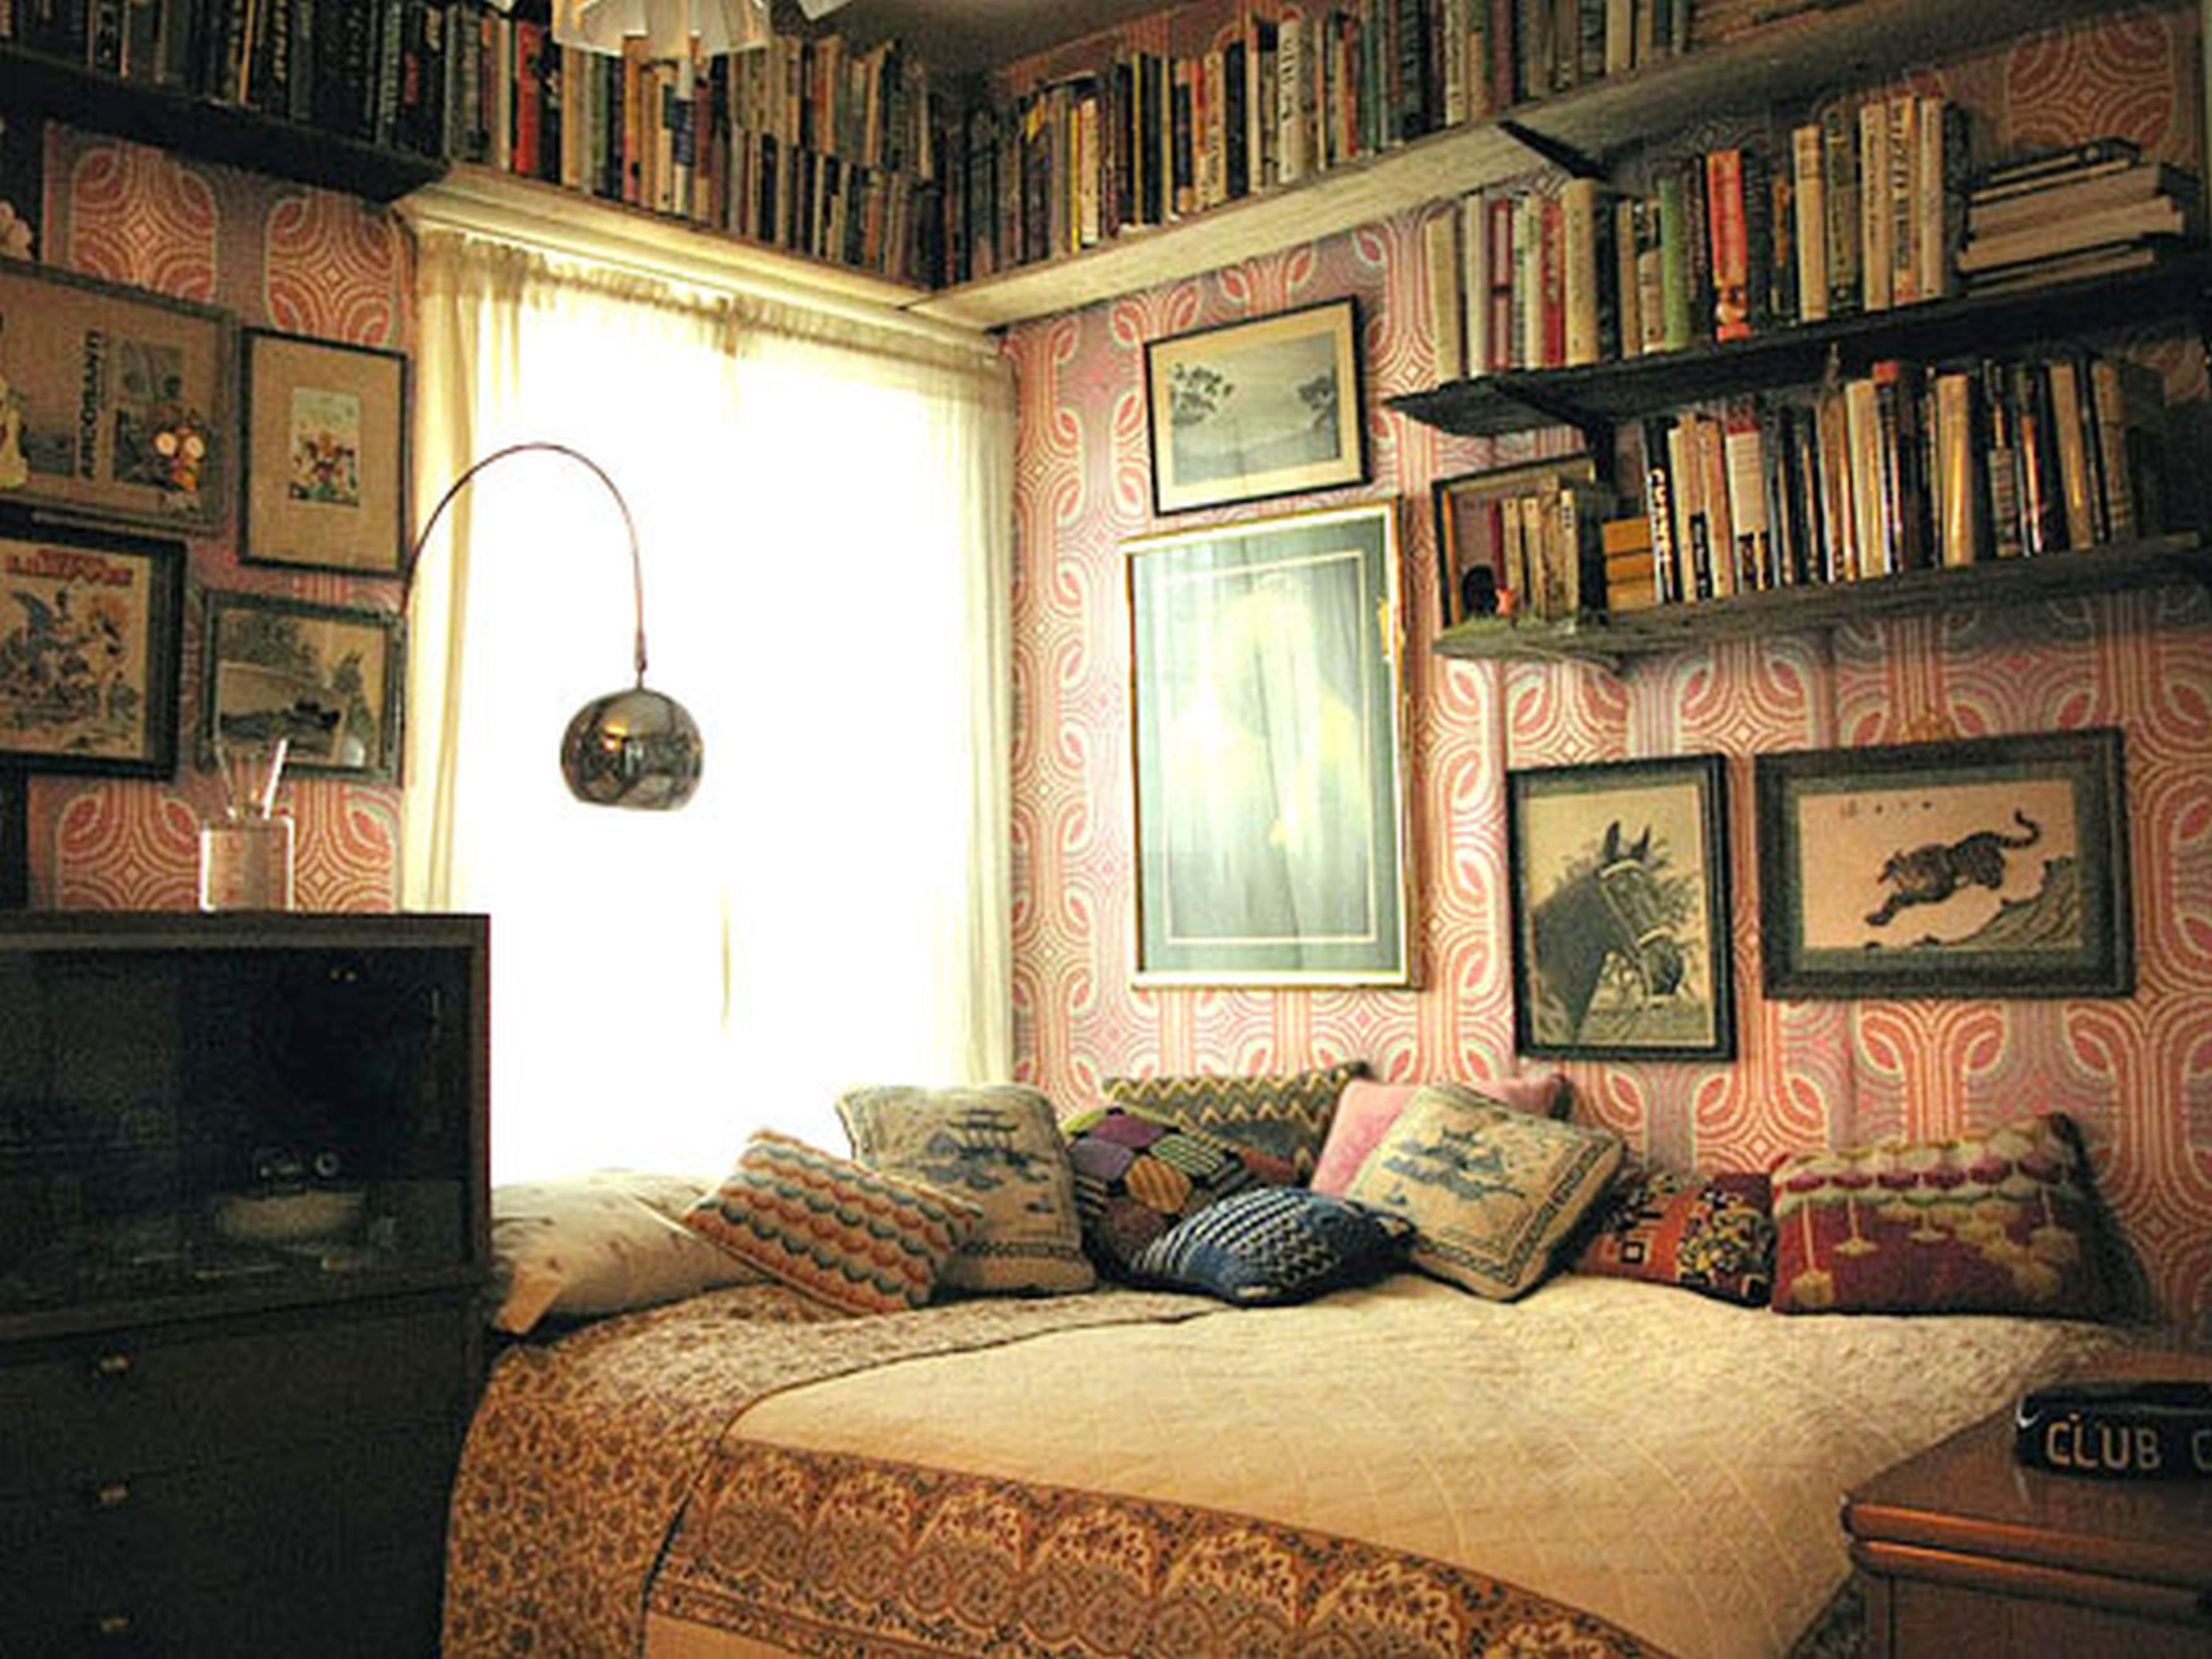 Besf of ideas decorating interior home design with vintage room ideas bookshelving on pink wall paint decoration arc floor lamp glass window black color